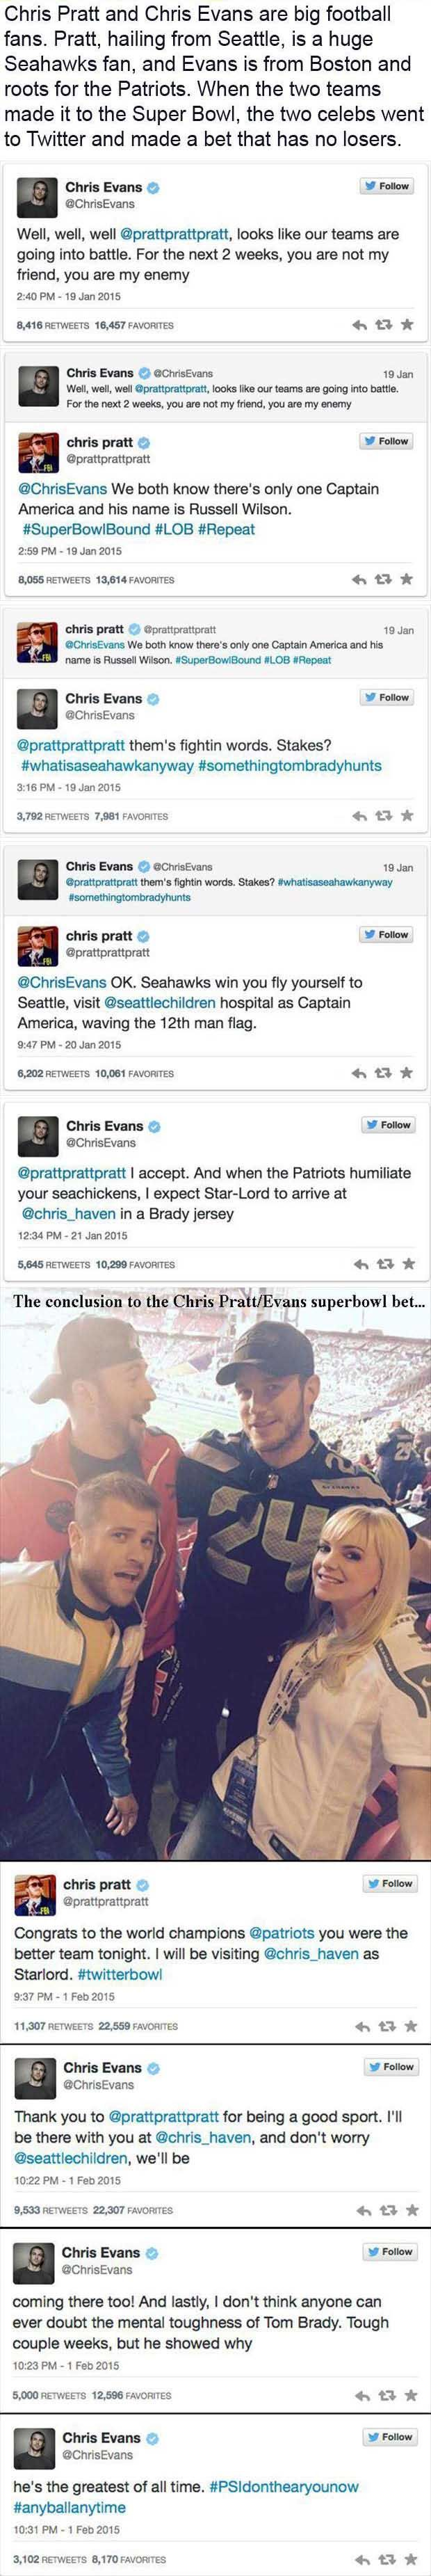 This is great! I love how Chris Evans still went to the children's hospital!